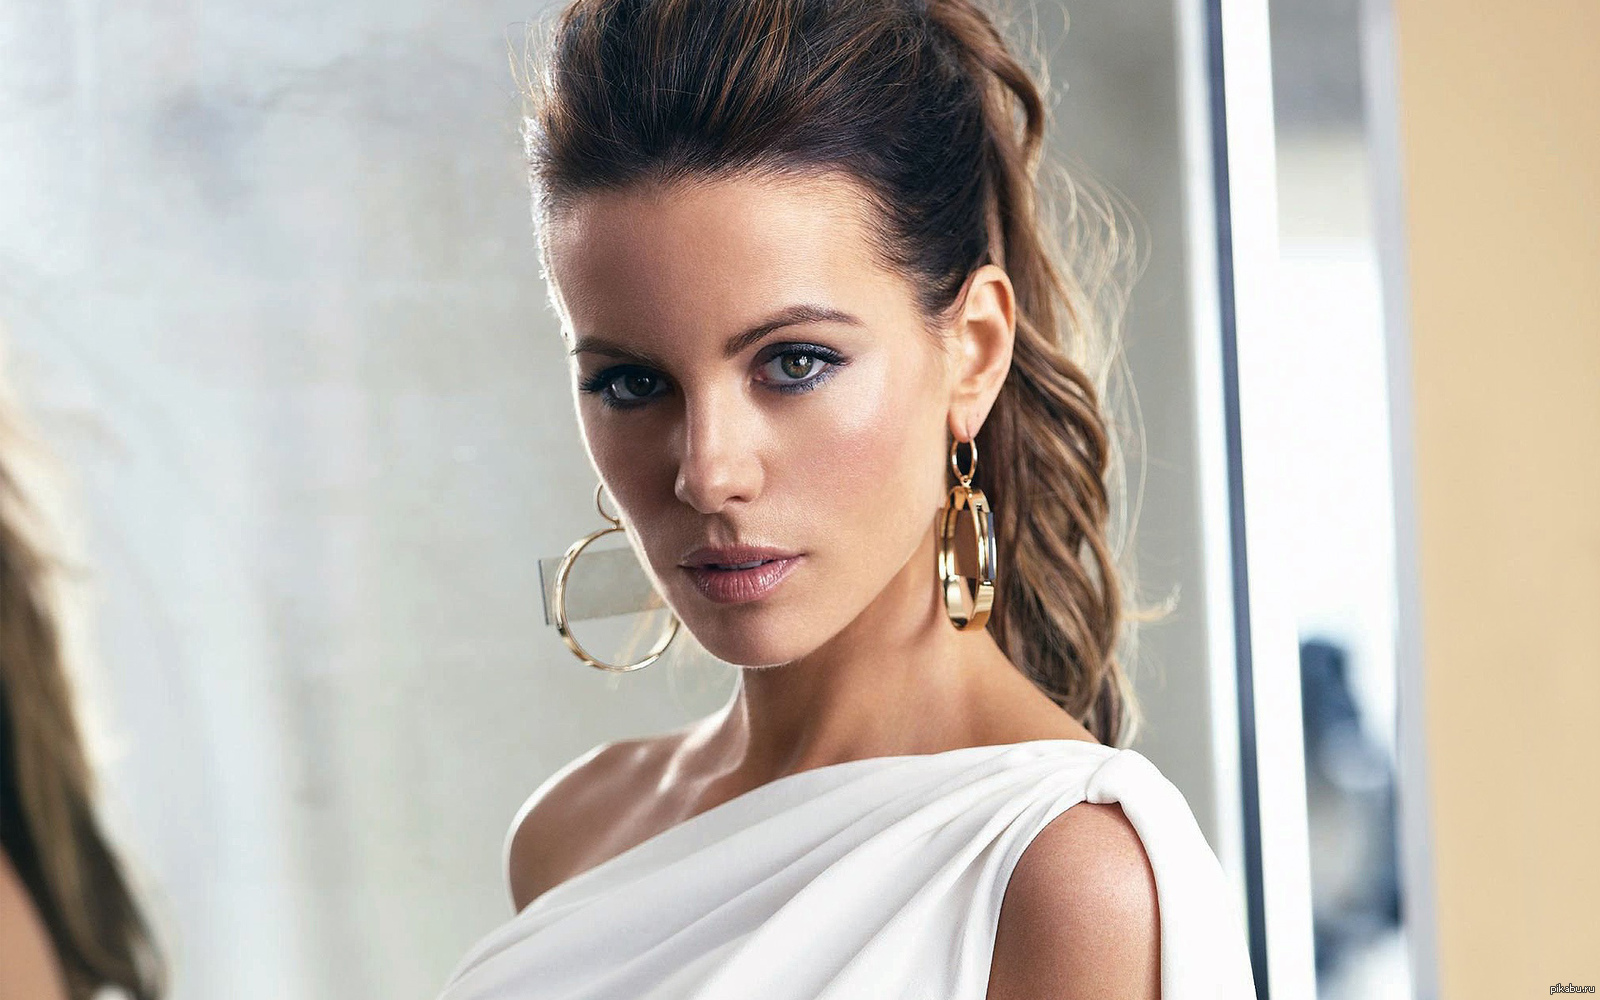 Kathrin Romary Beckinsale born 26 July 1973 is a British actress After some minor television roles she made her film debut in Much Ado About Nothing 1993 while